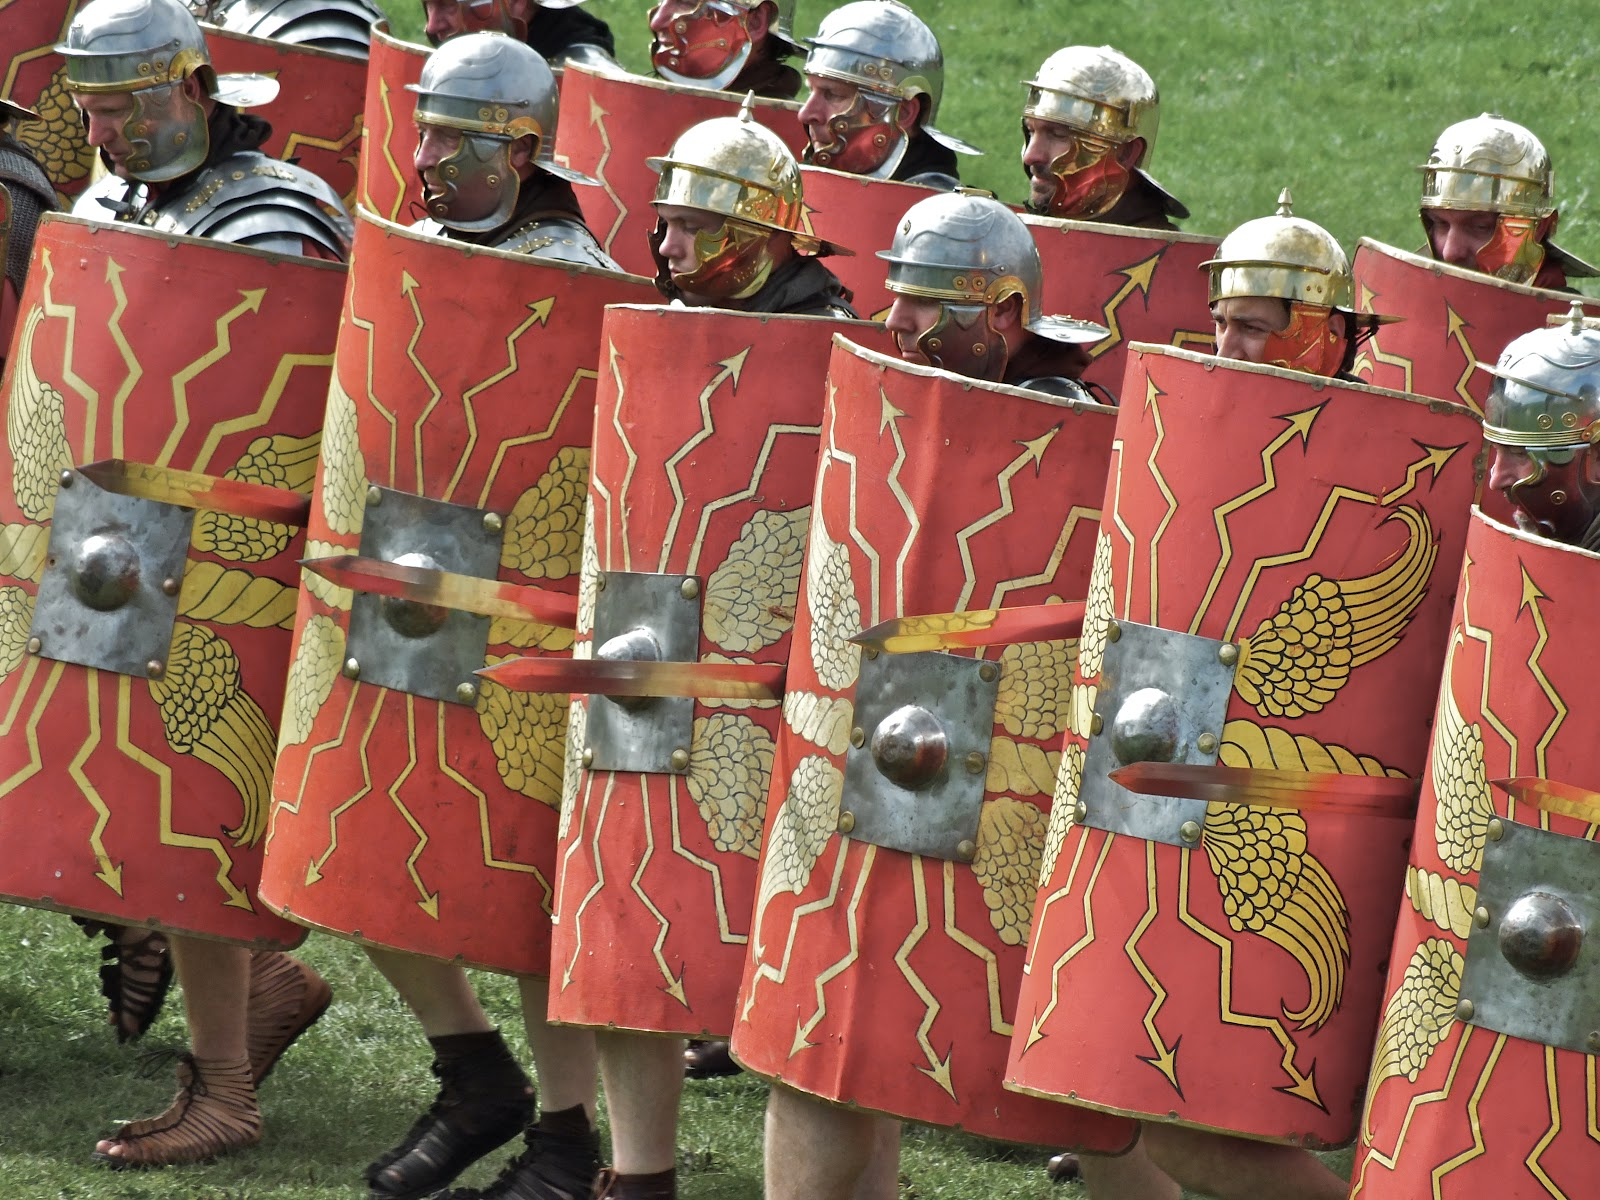 roman military View roman military research papers on academiaedu for free.